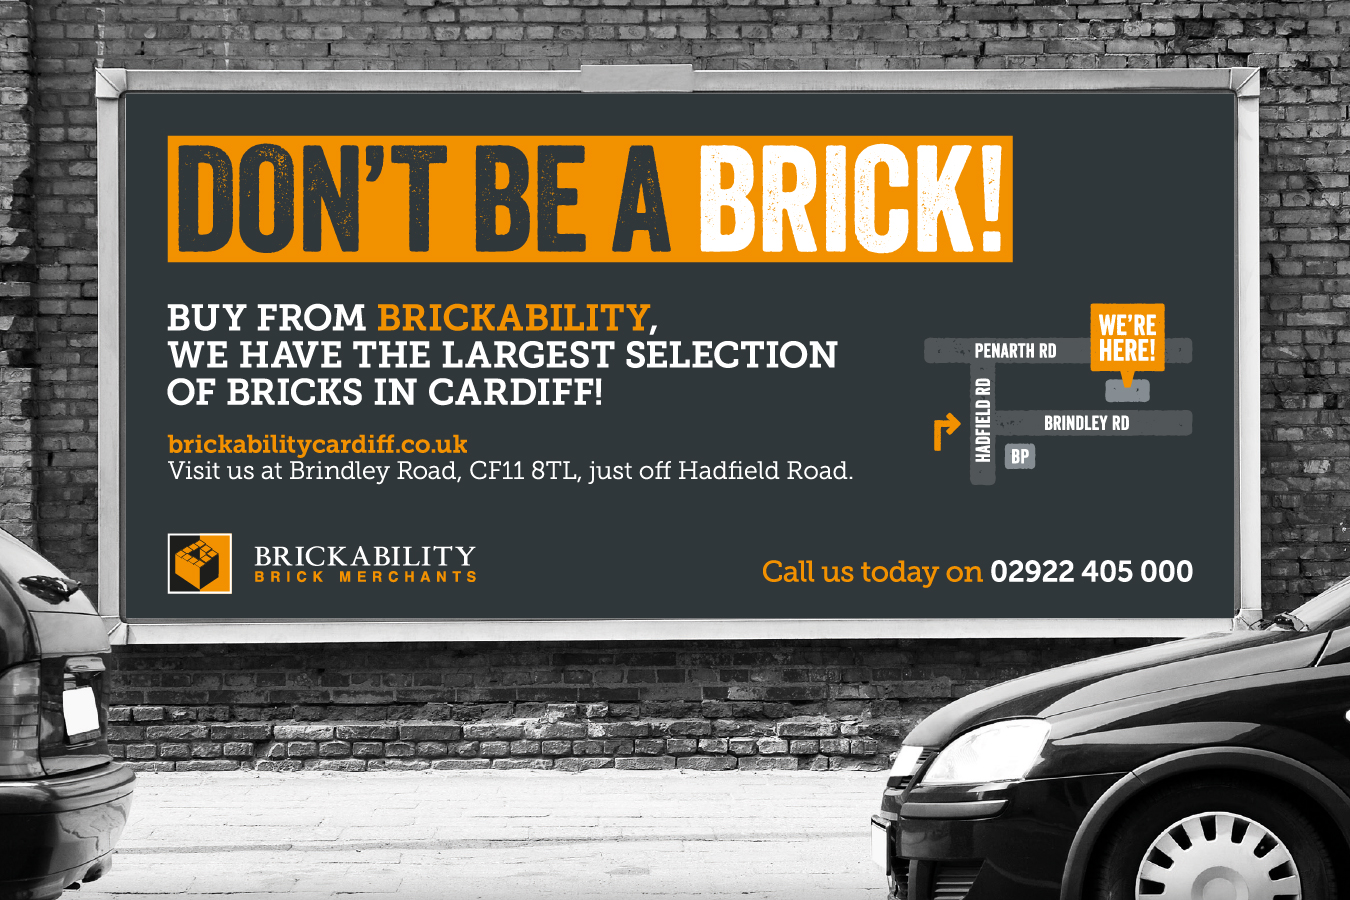 brickability billboard.jpg